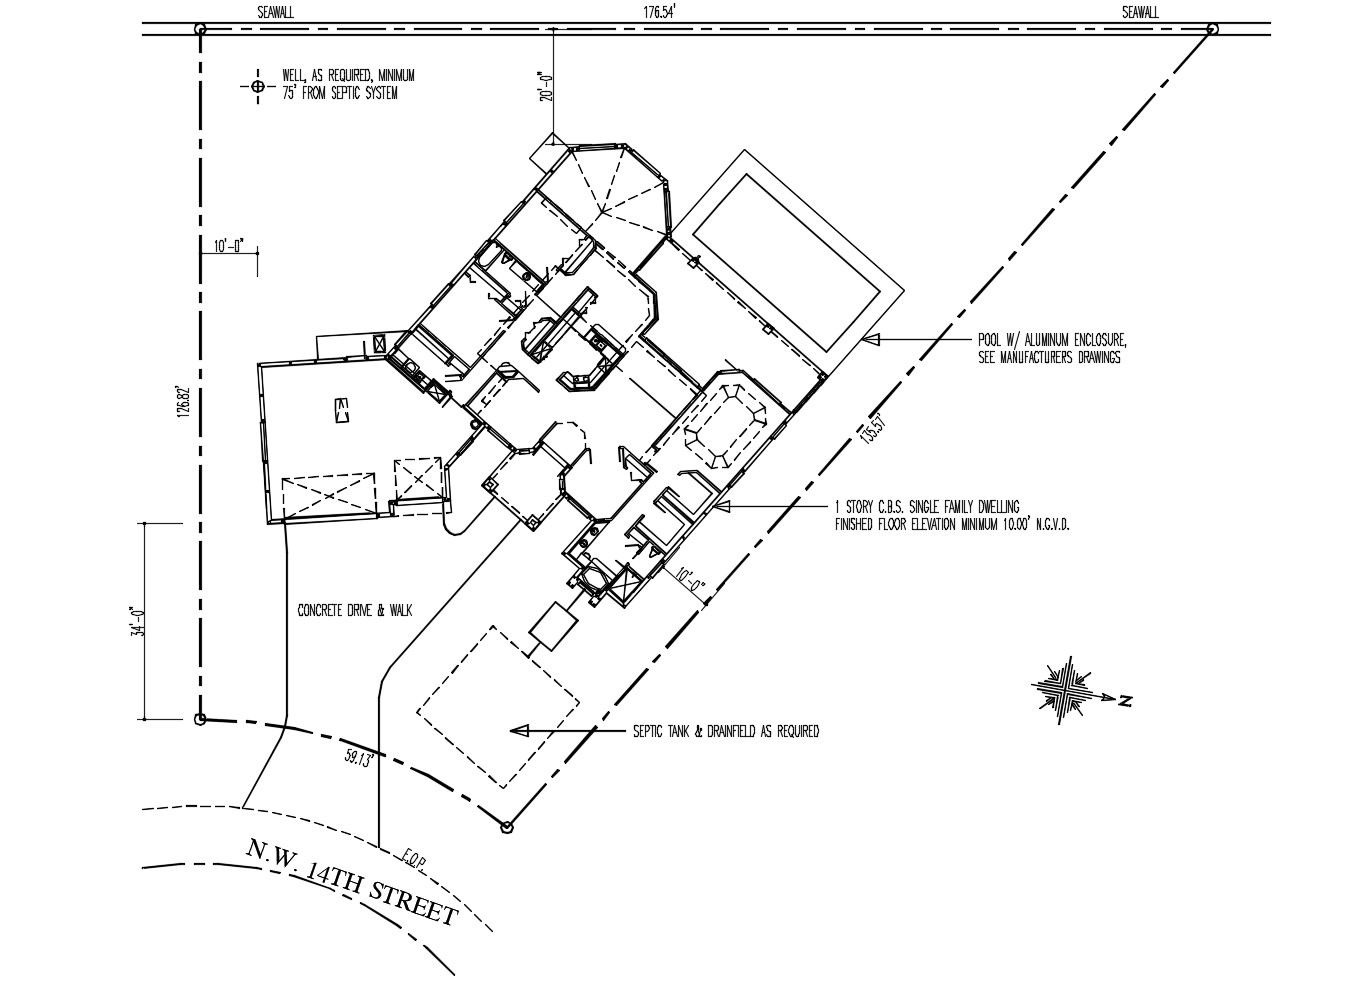 Site plan of the residential house with detail dimension